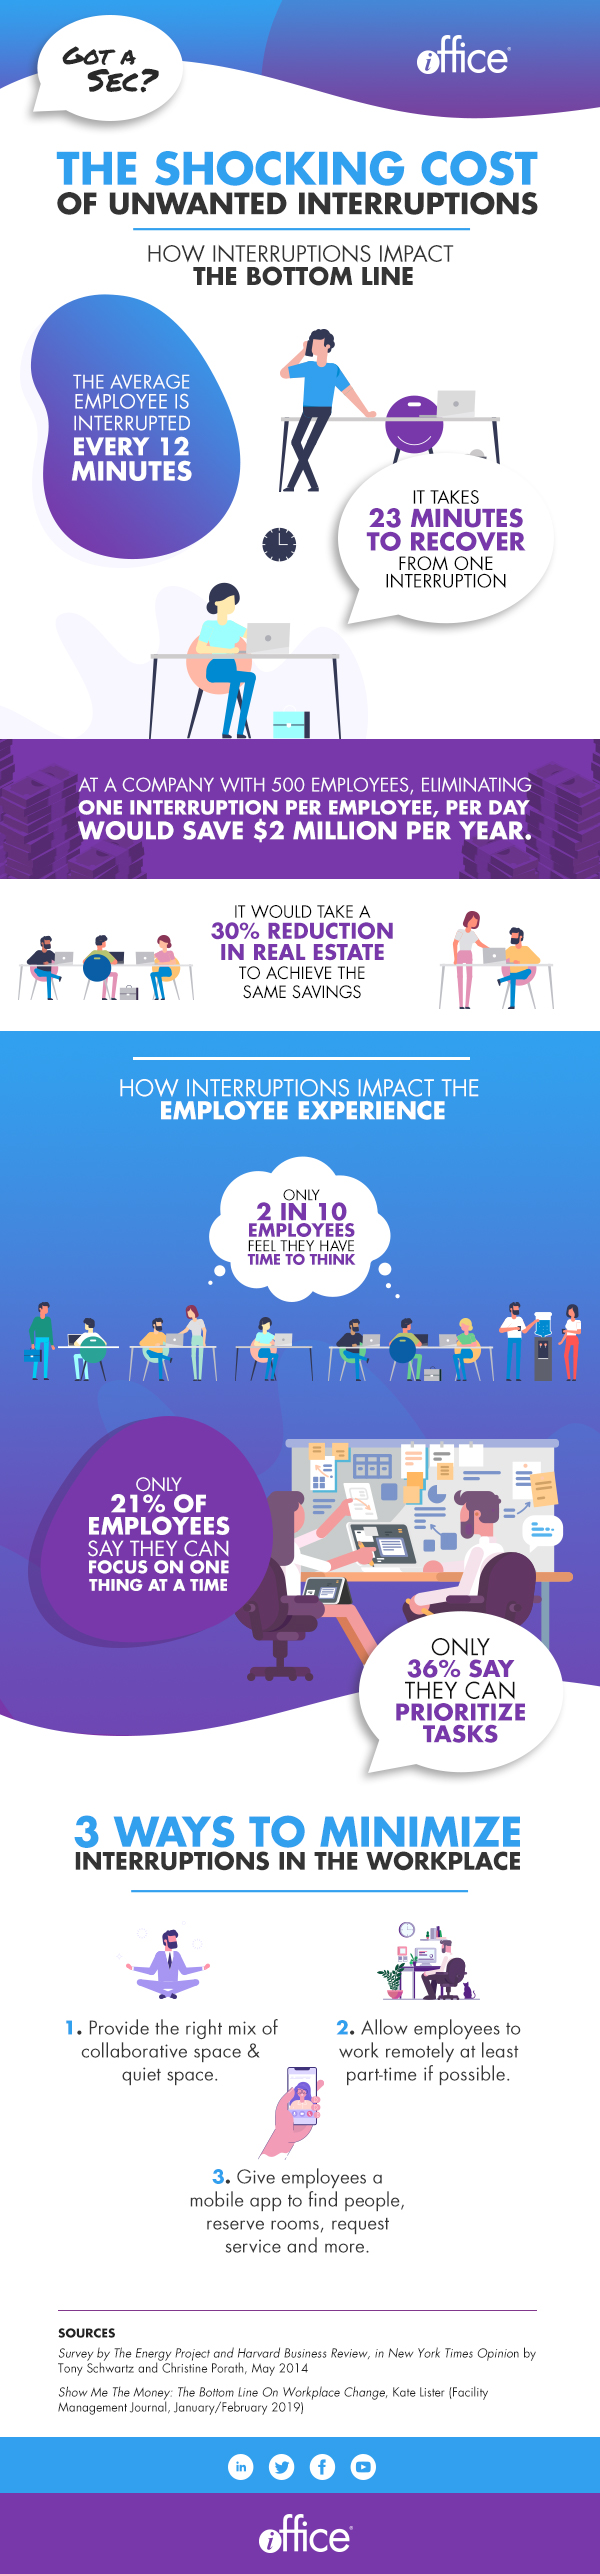 Workplace-interruptions-infographic